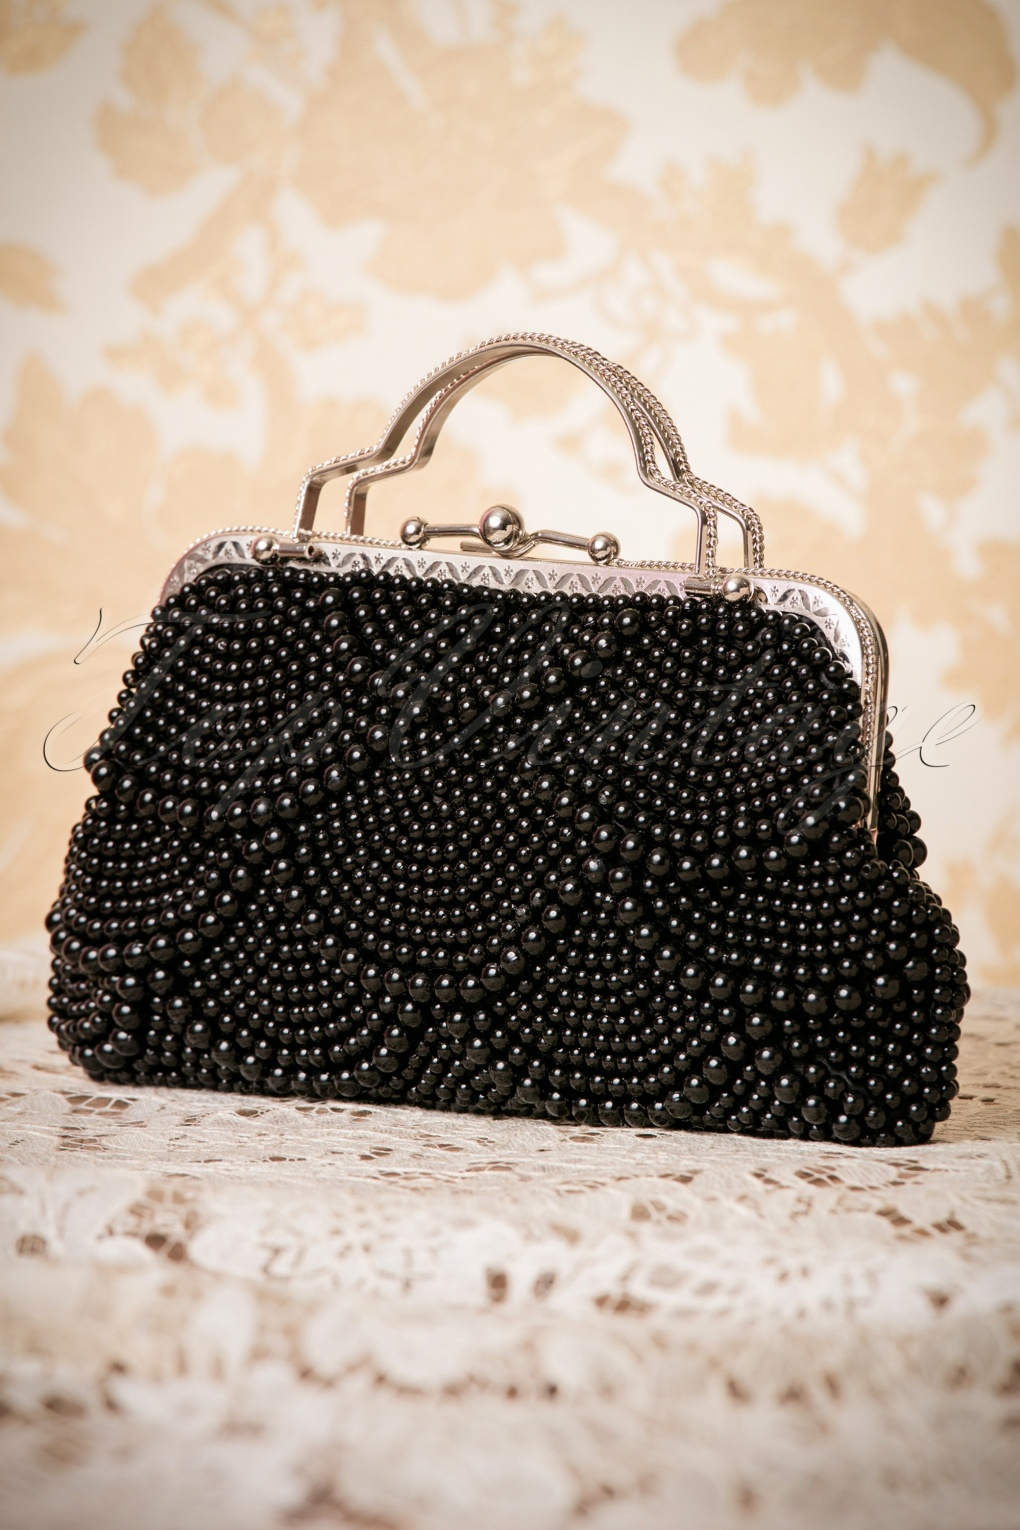 1920s Accessories | Great Gatsby Accessories Guide 20s Agnes Beaded Handbag in Black £48.64 AT vintagedancer.com